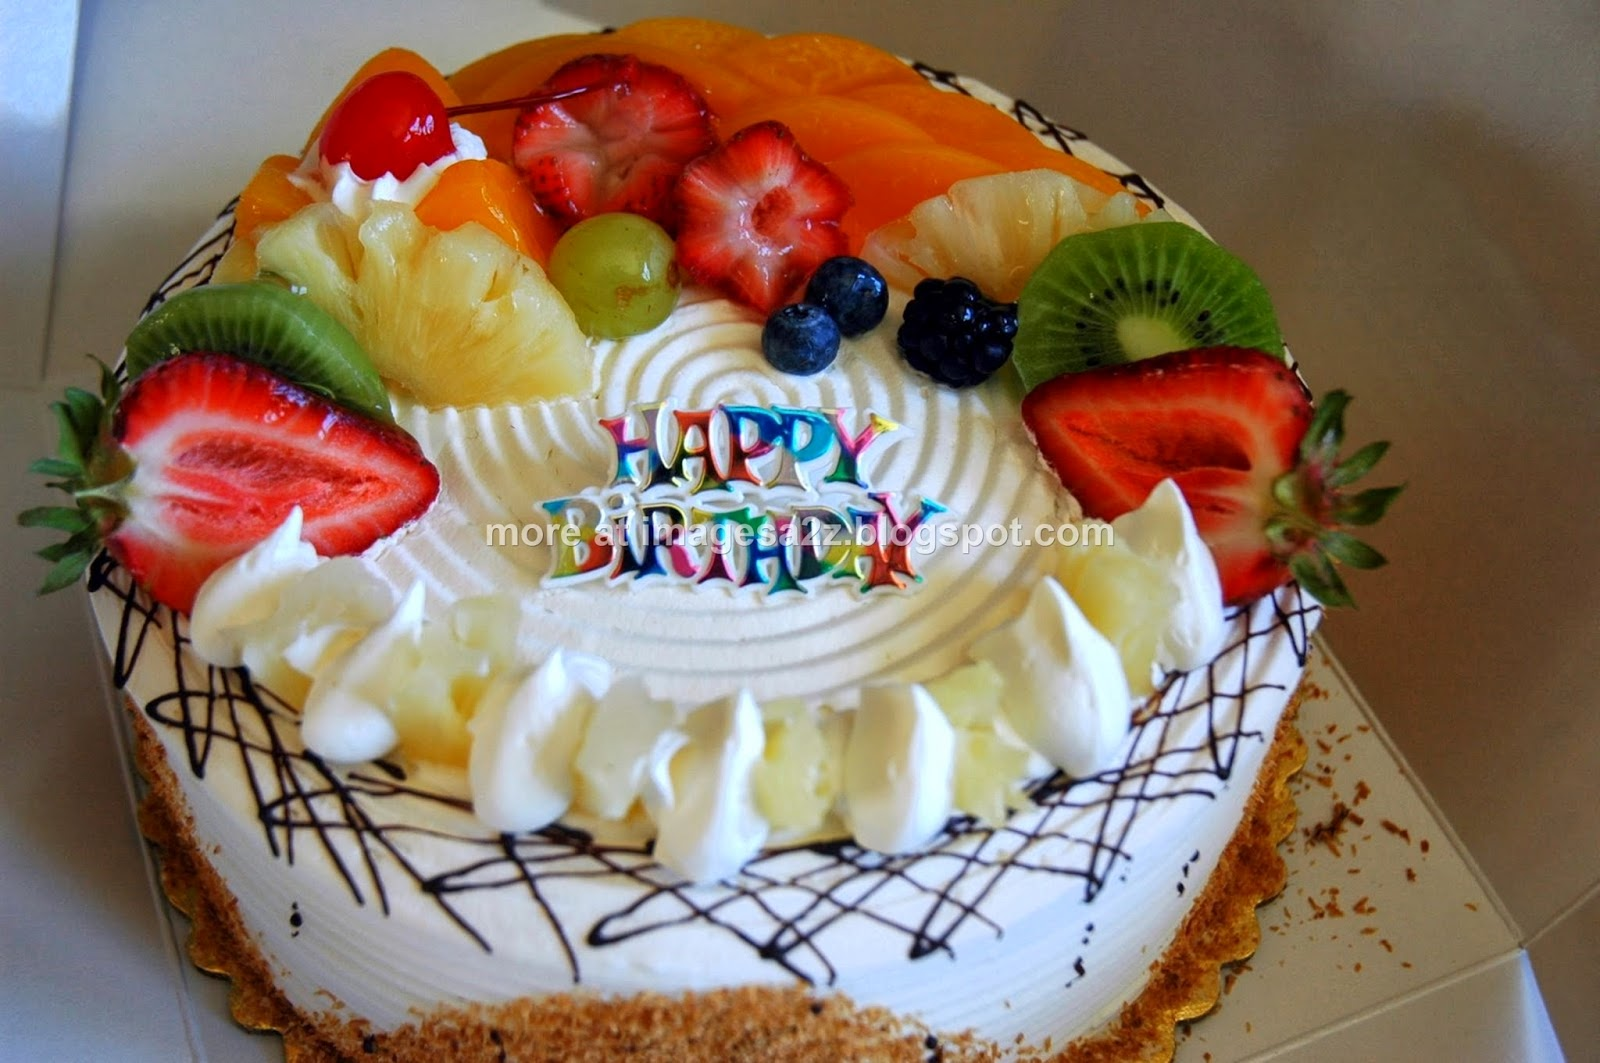 Photos Of Birthday Cake And Wishes : birthday wishes for sister with cake images - happy ...